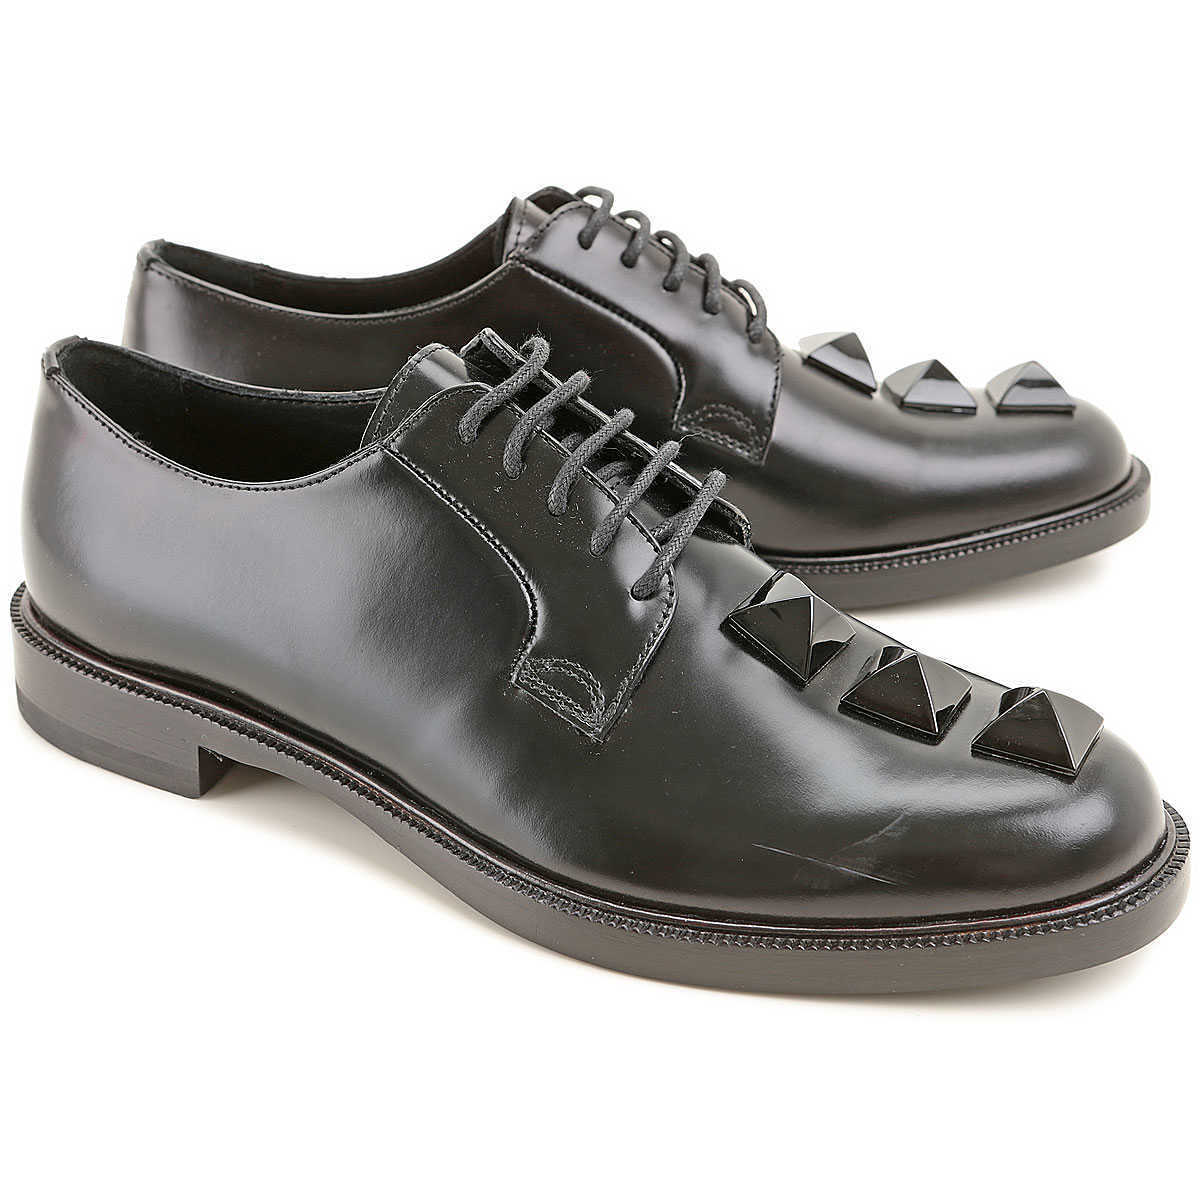 Giacomorelli Lace Up Shoes for Men Oxfords 5.5 6.5 7 Derbies and Brogues On Sale in Outlet UK - GOOFASH